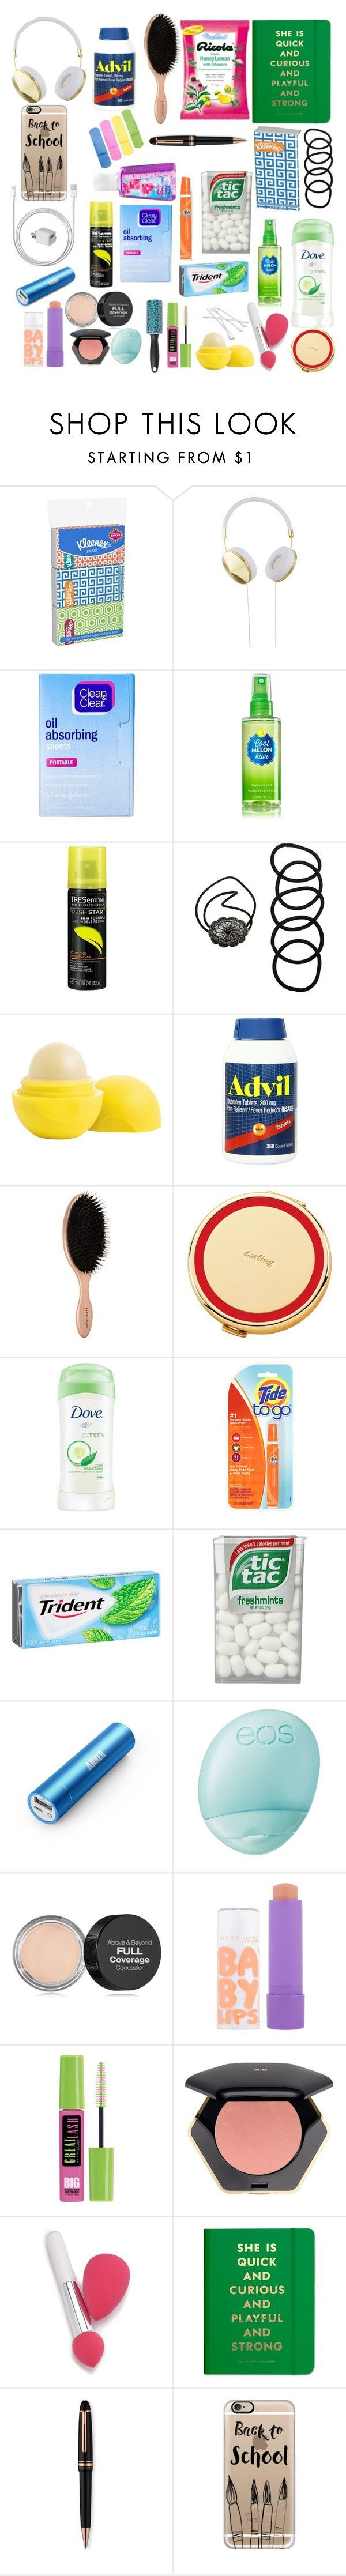 """Back To School Girl's Emergency Kit"" by oliviagallup ❤️ liked on Polyvore featuring Frends, Clean & Clear, TRESemmé️️, Wet Seal, Eos, Kate Spade, Dove, Panasonic, NYX and Maybelline"